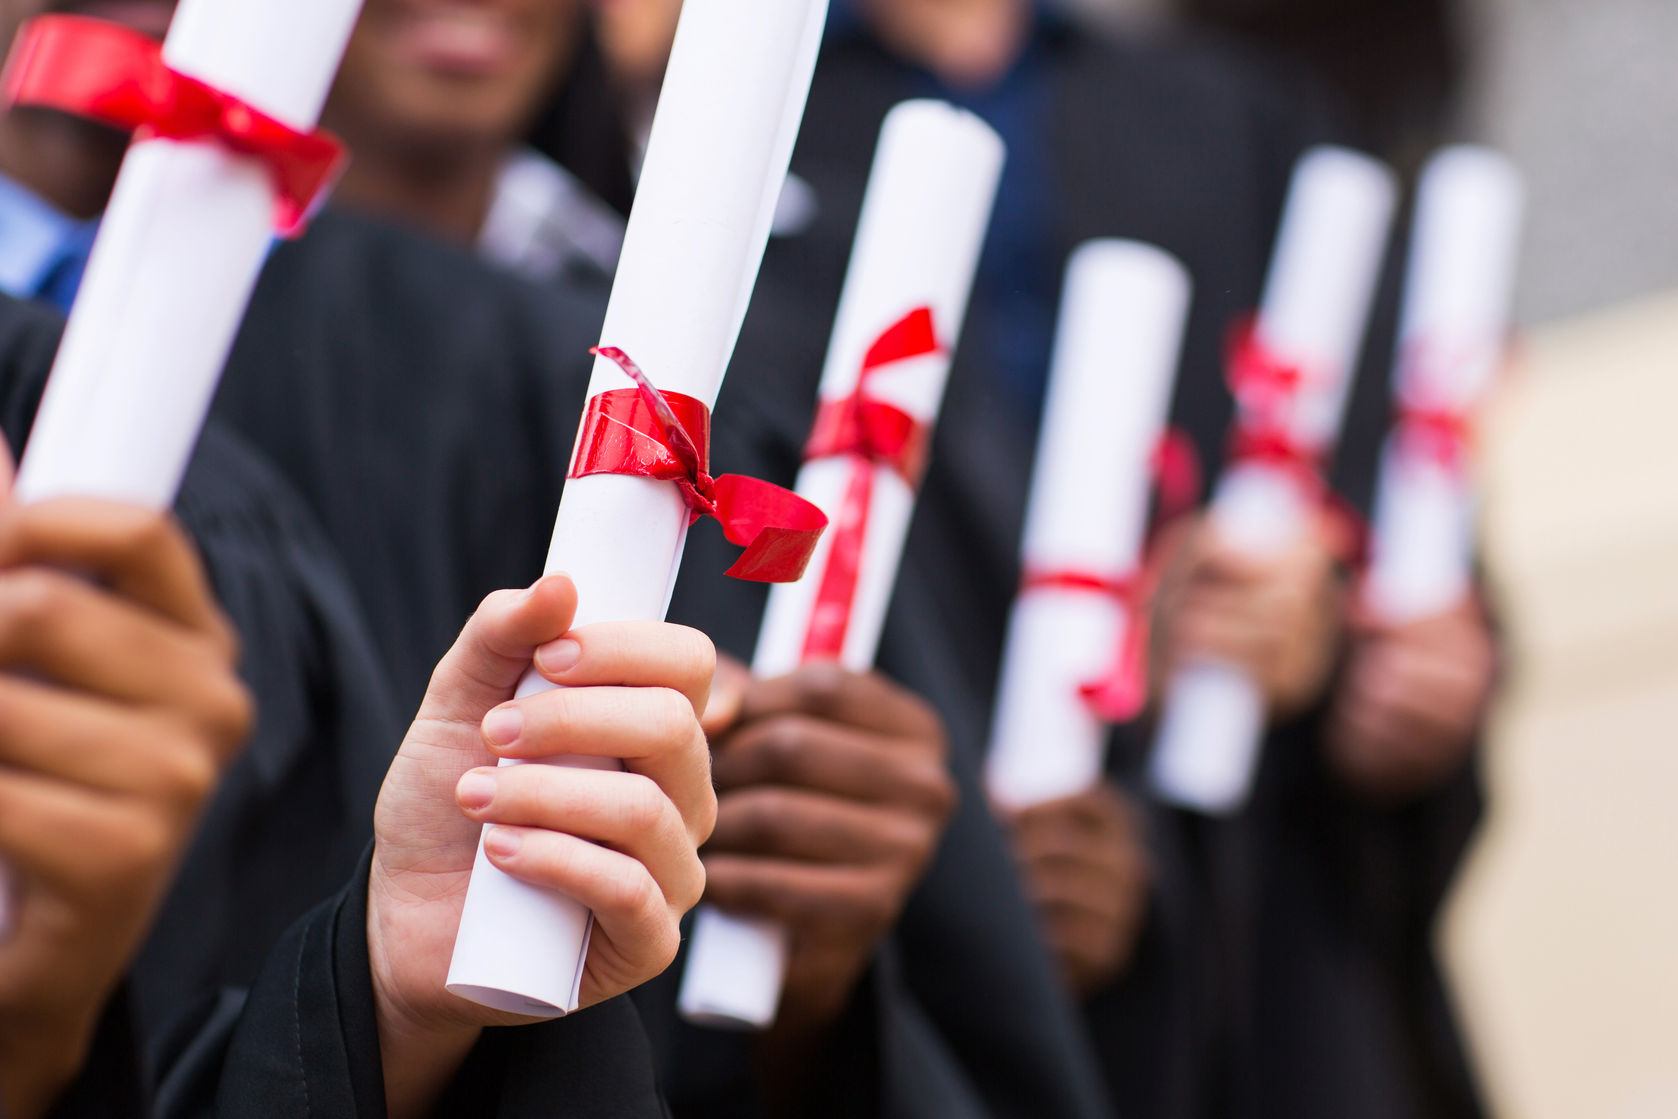 Degrees -  of graduates holding diplomas